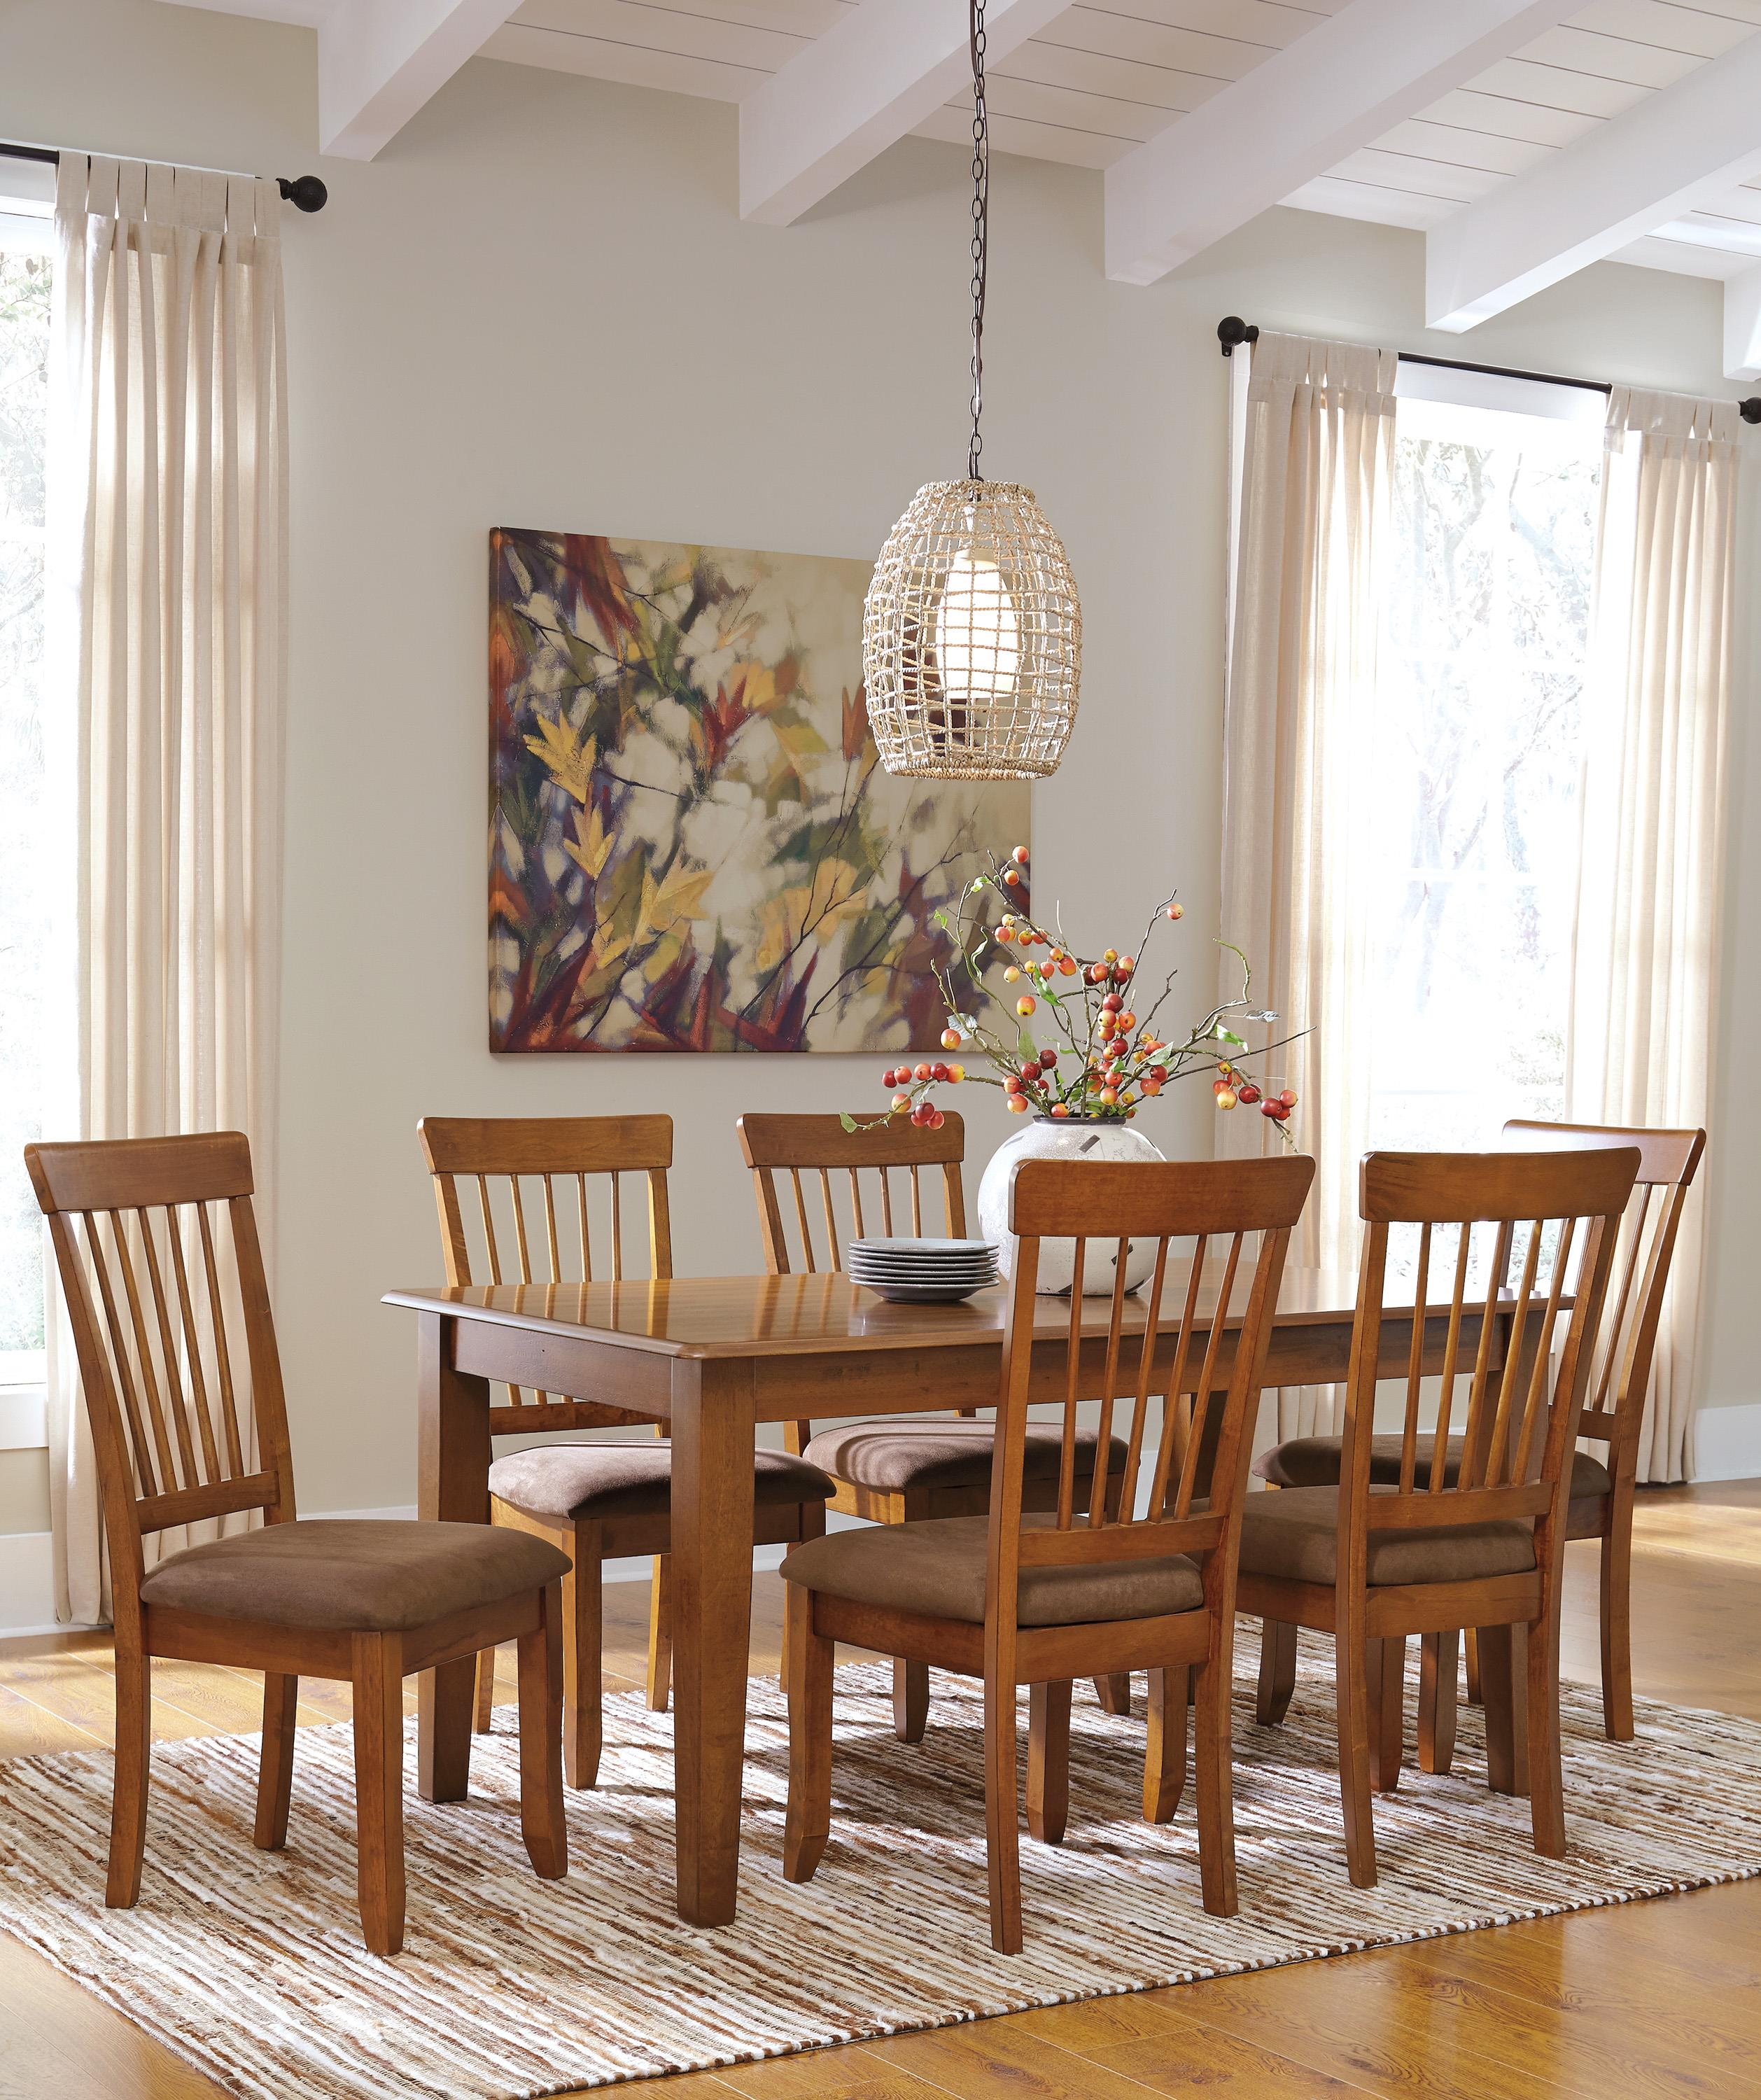 Ashley Table And Chairs: Ashley Furniture Berringer 7-Piece 36x60 Table & Chair Set